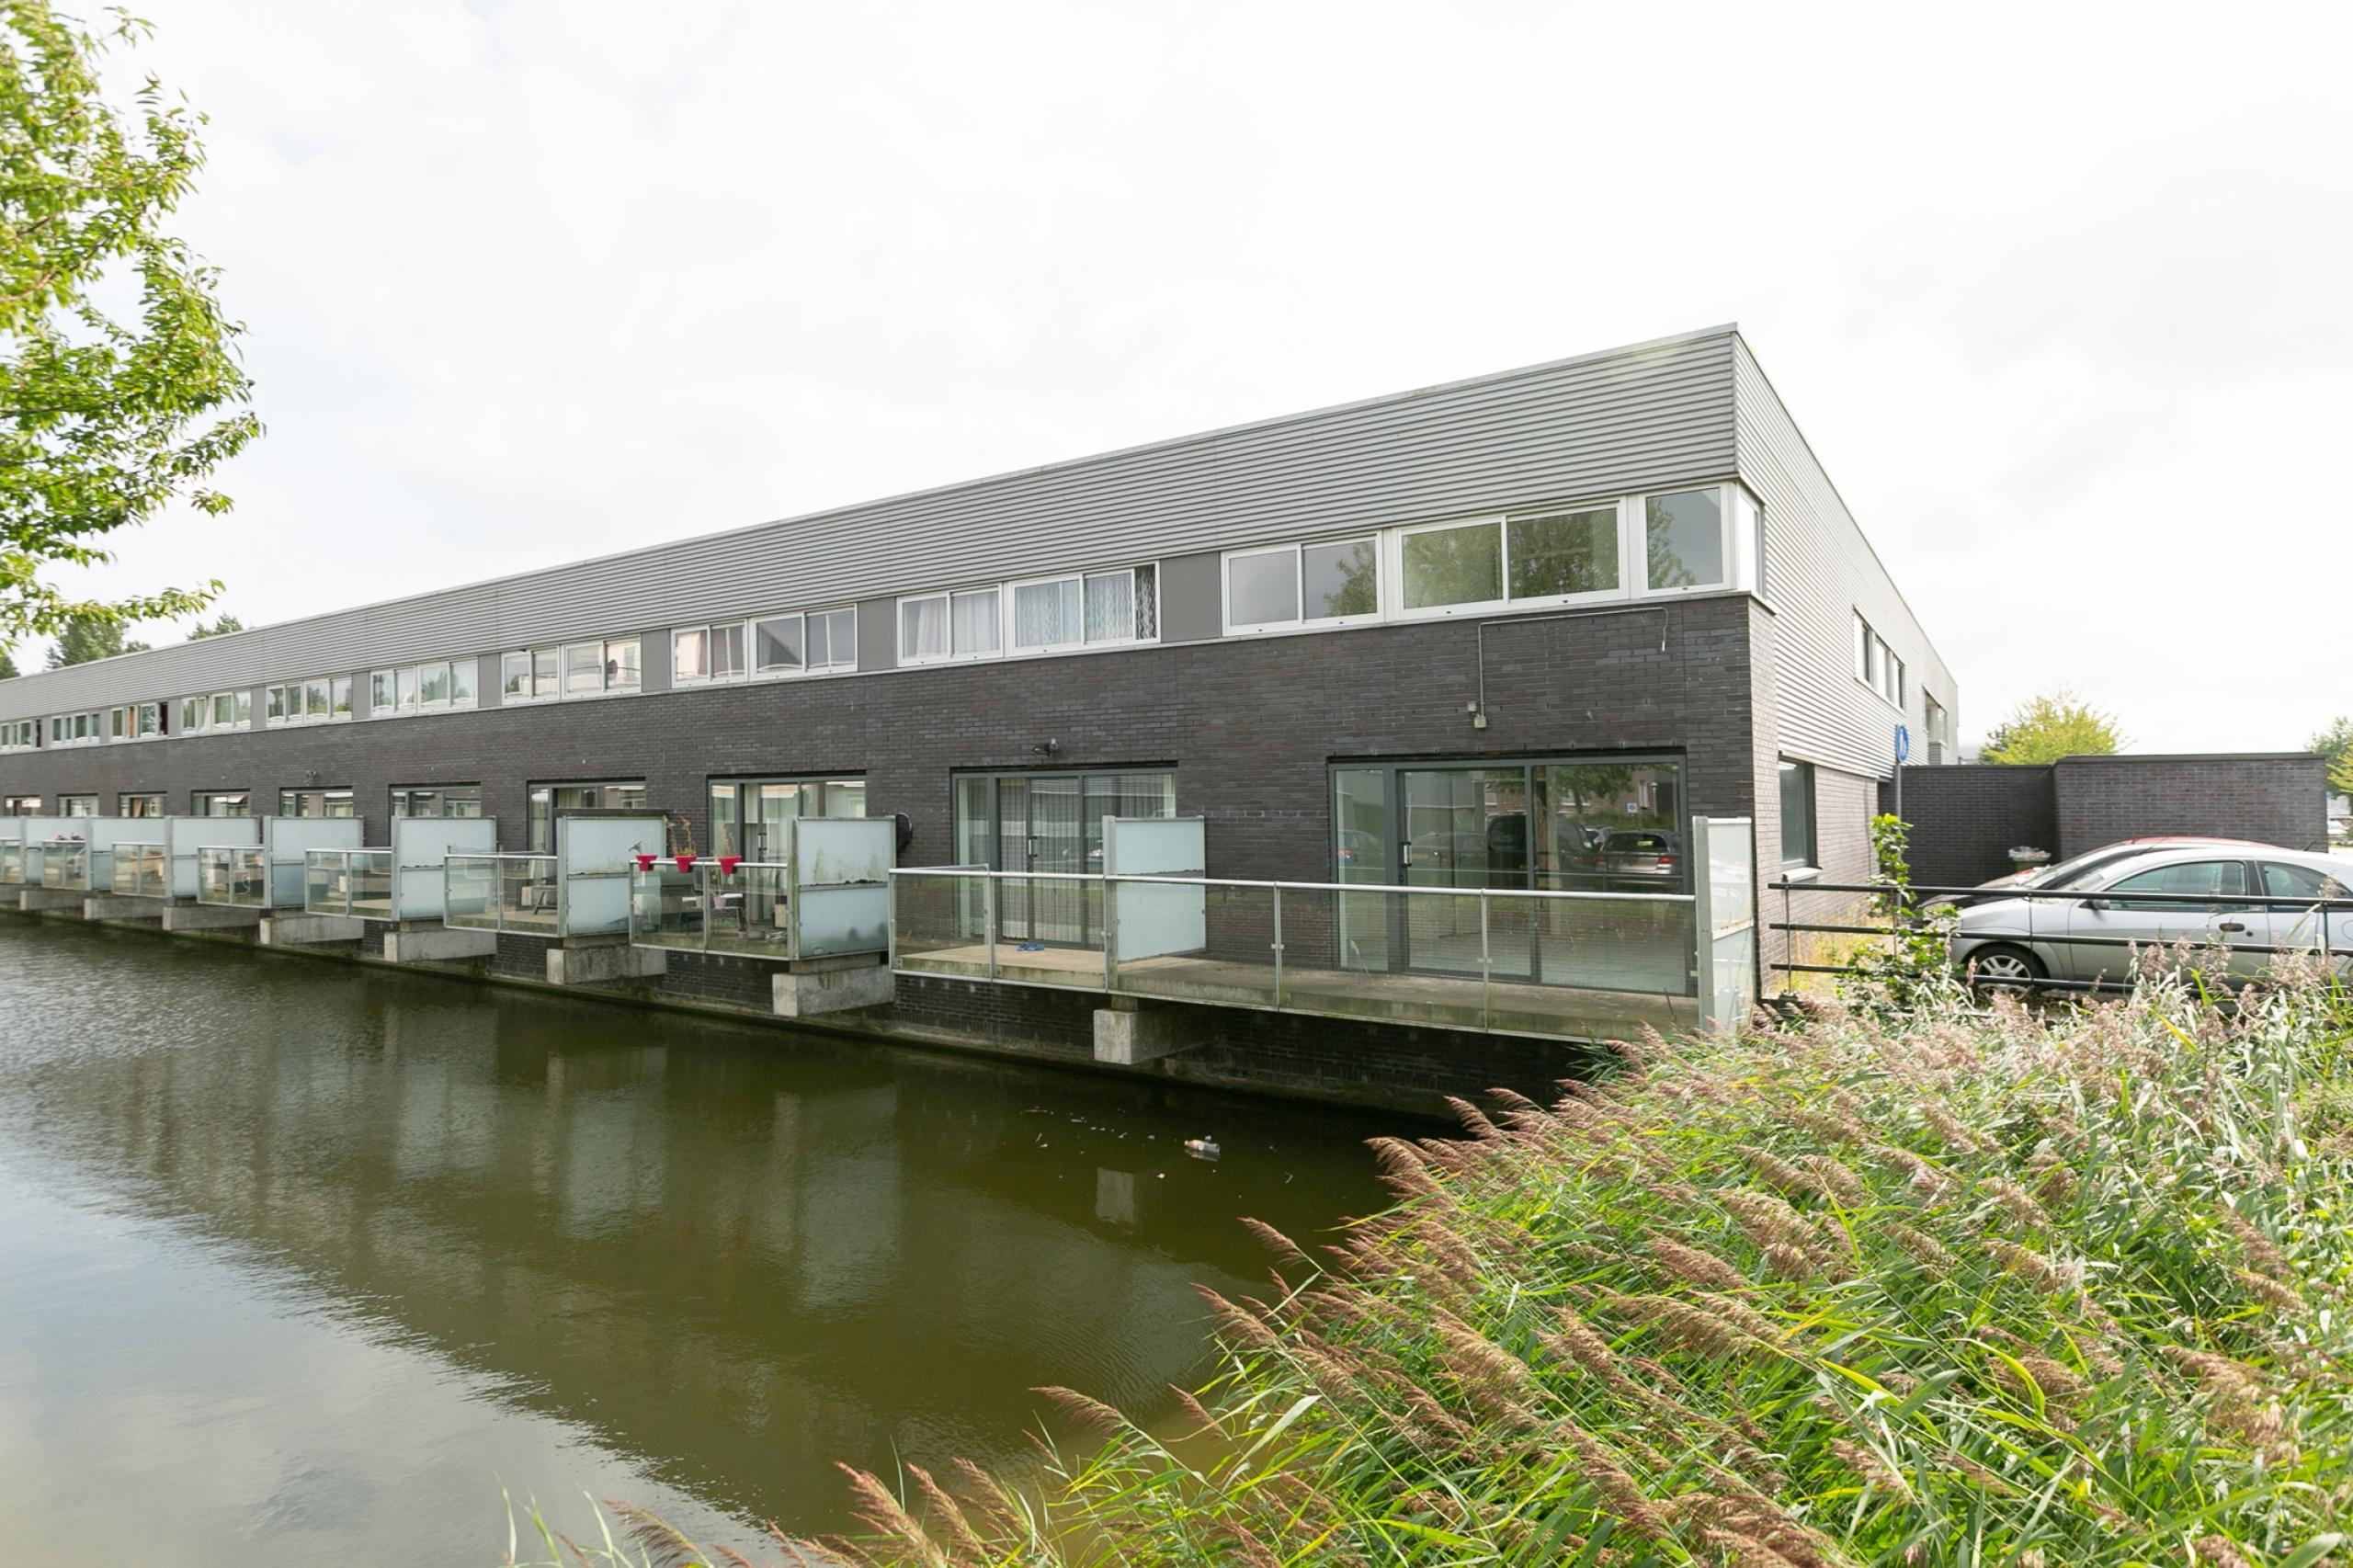 Bekijk de foto van: Mieogvaart 1, 2497 WX in Den haag - The Hague Real Estate Services